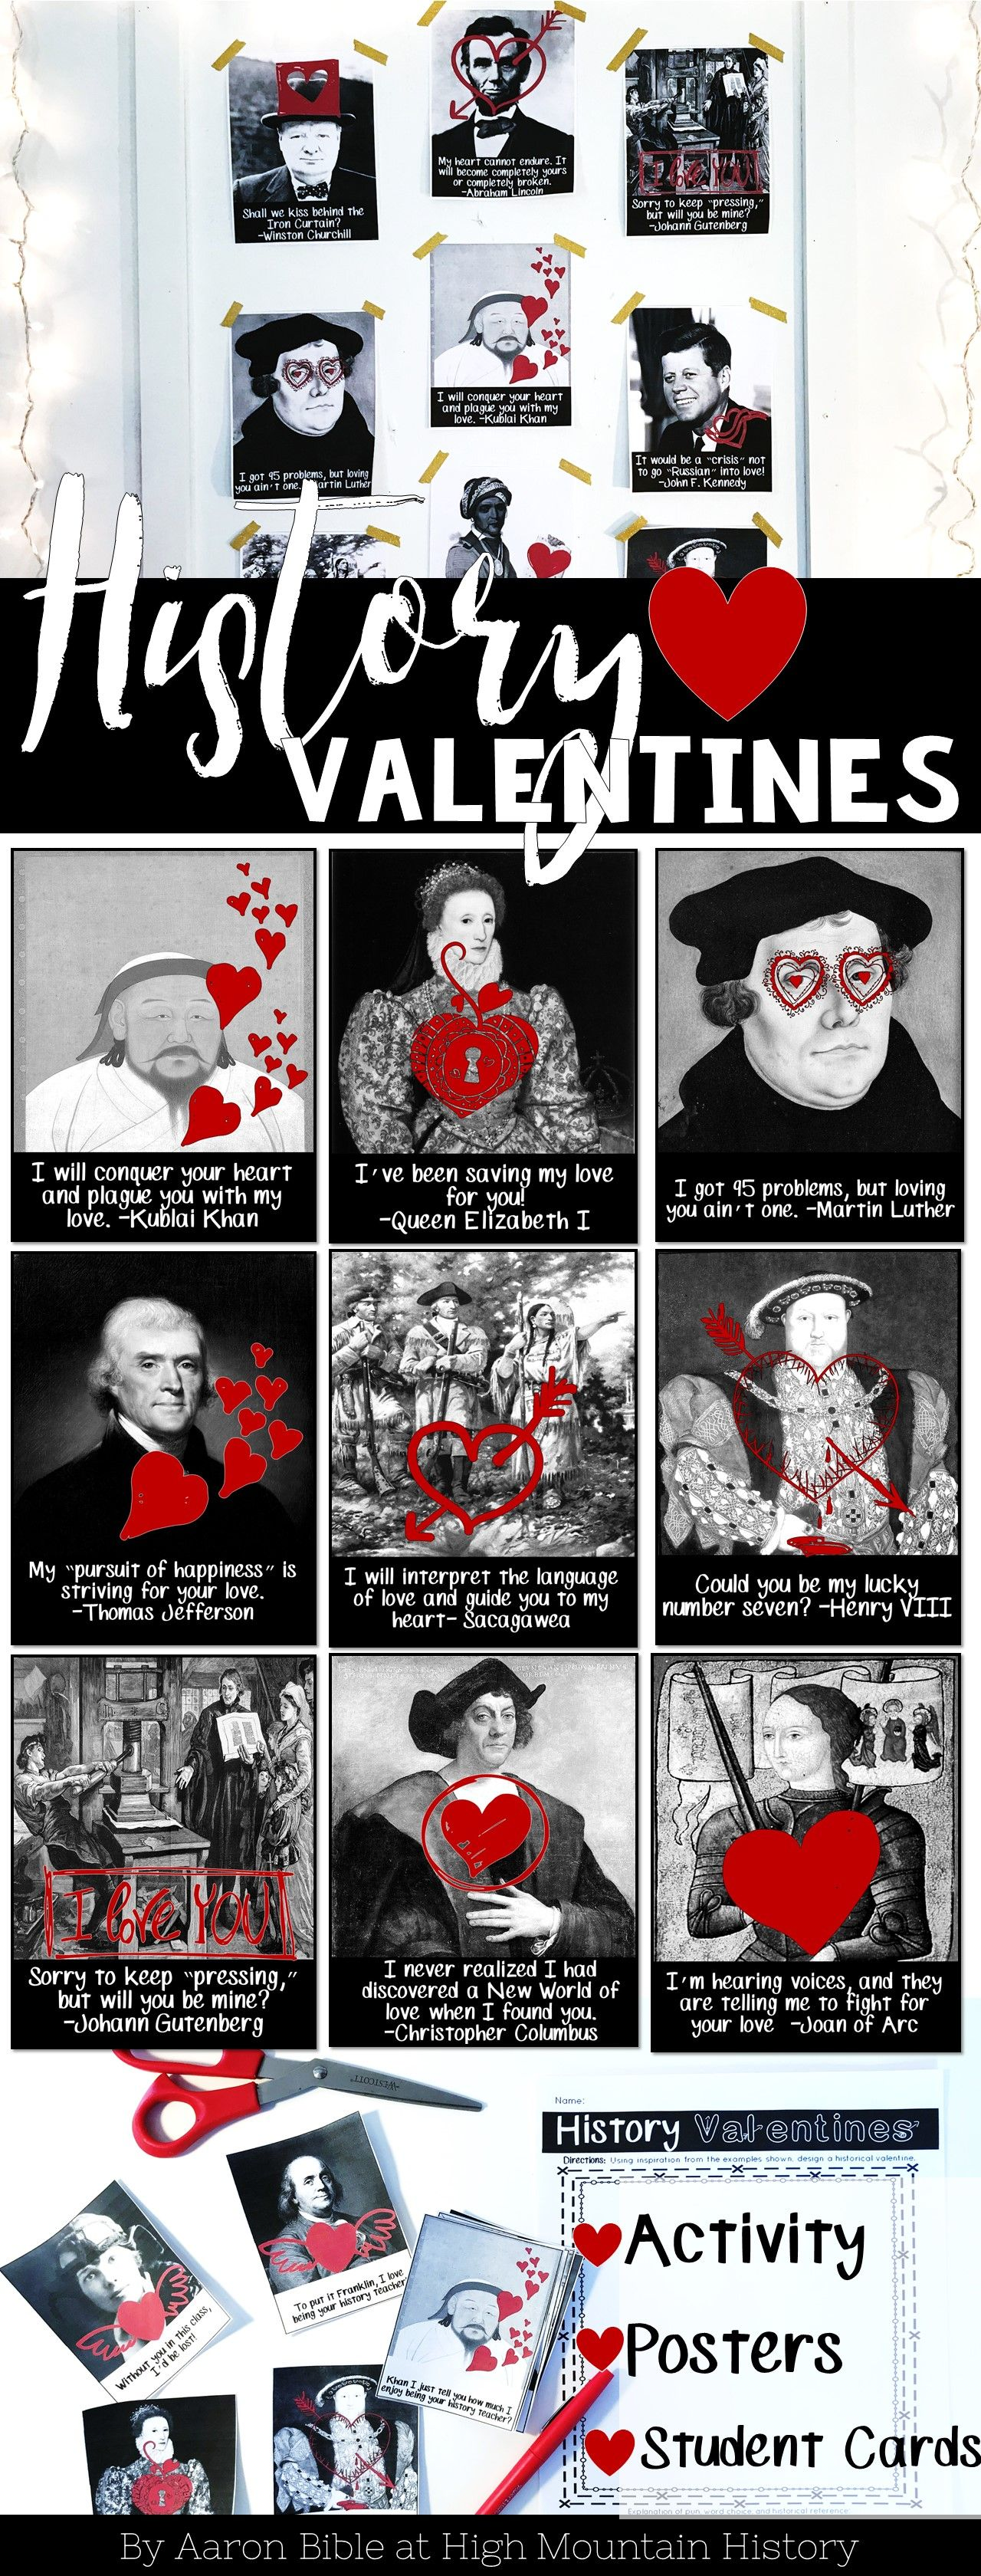 History Valentines History Valentine S Day Activity